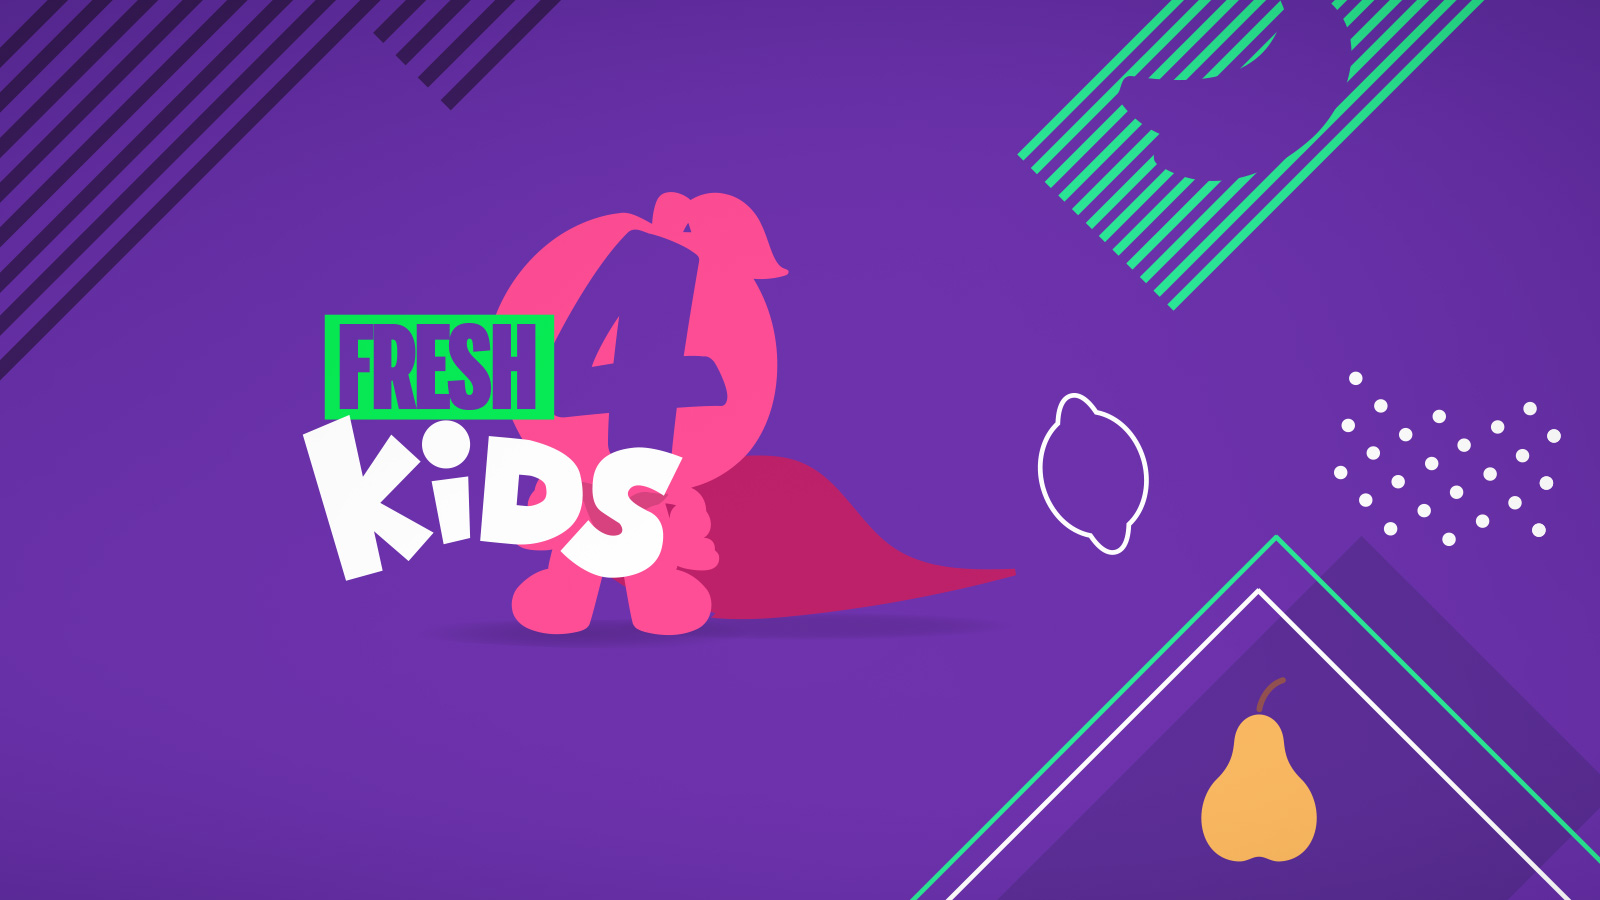 Fresh 4 Kids - Fruit Heros!